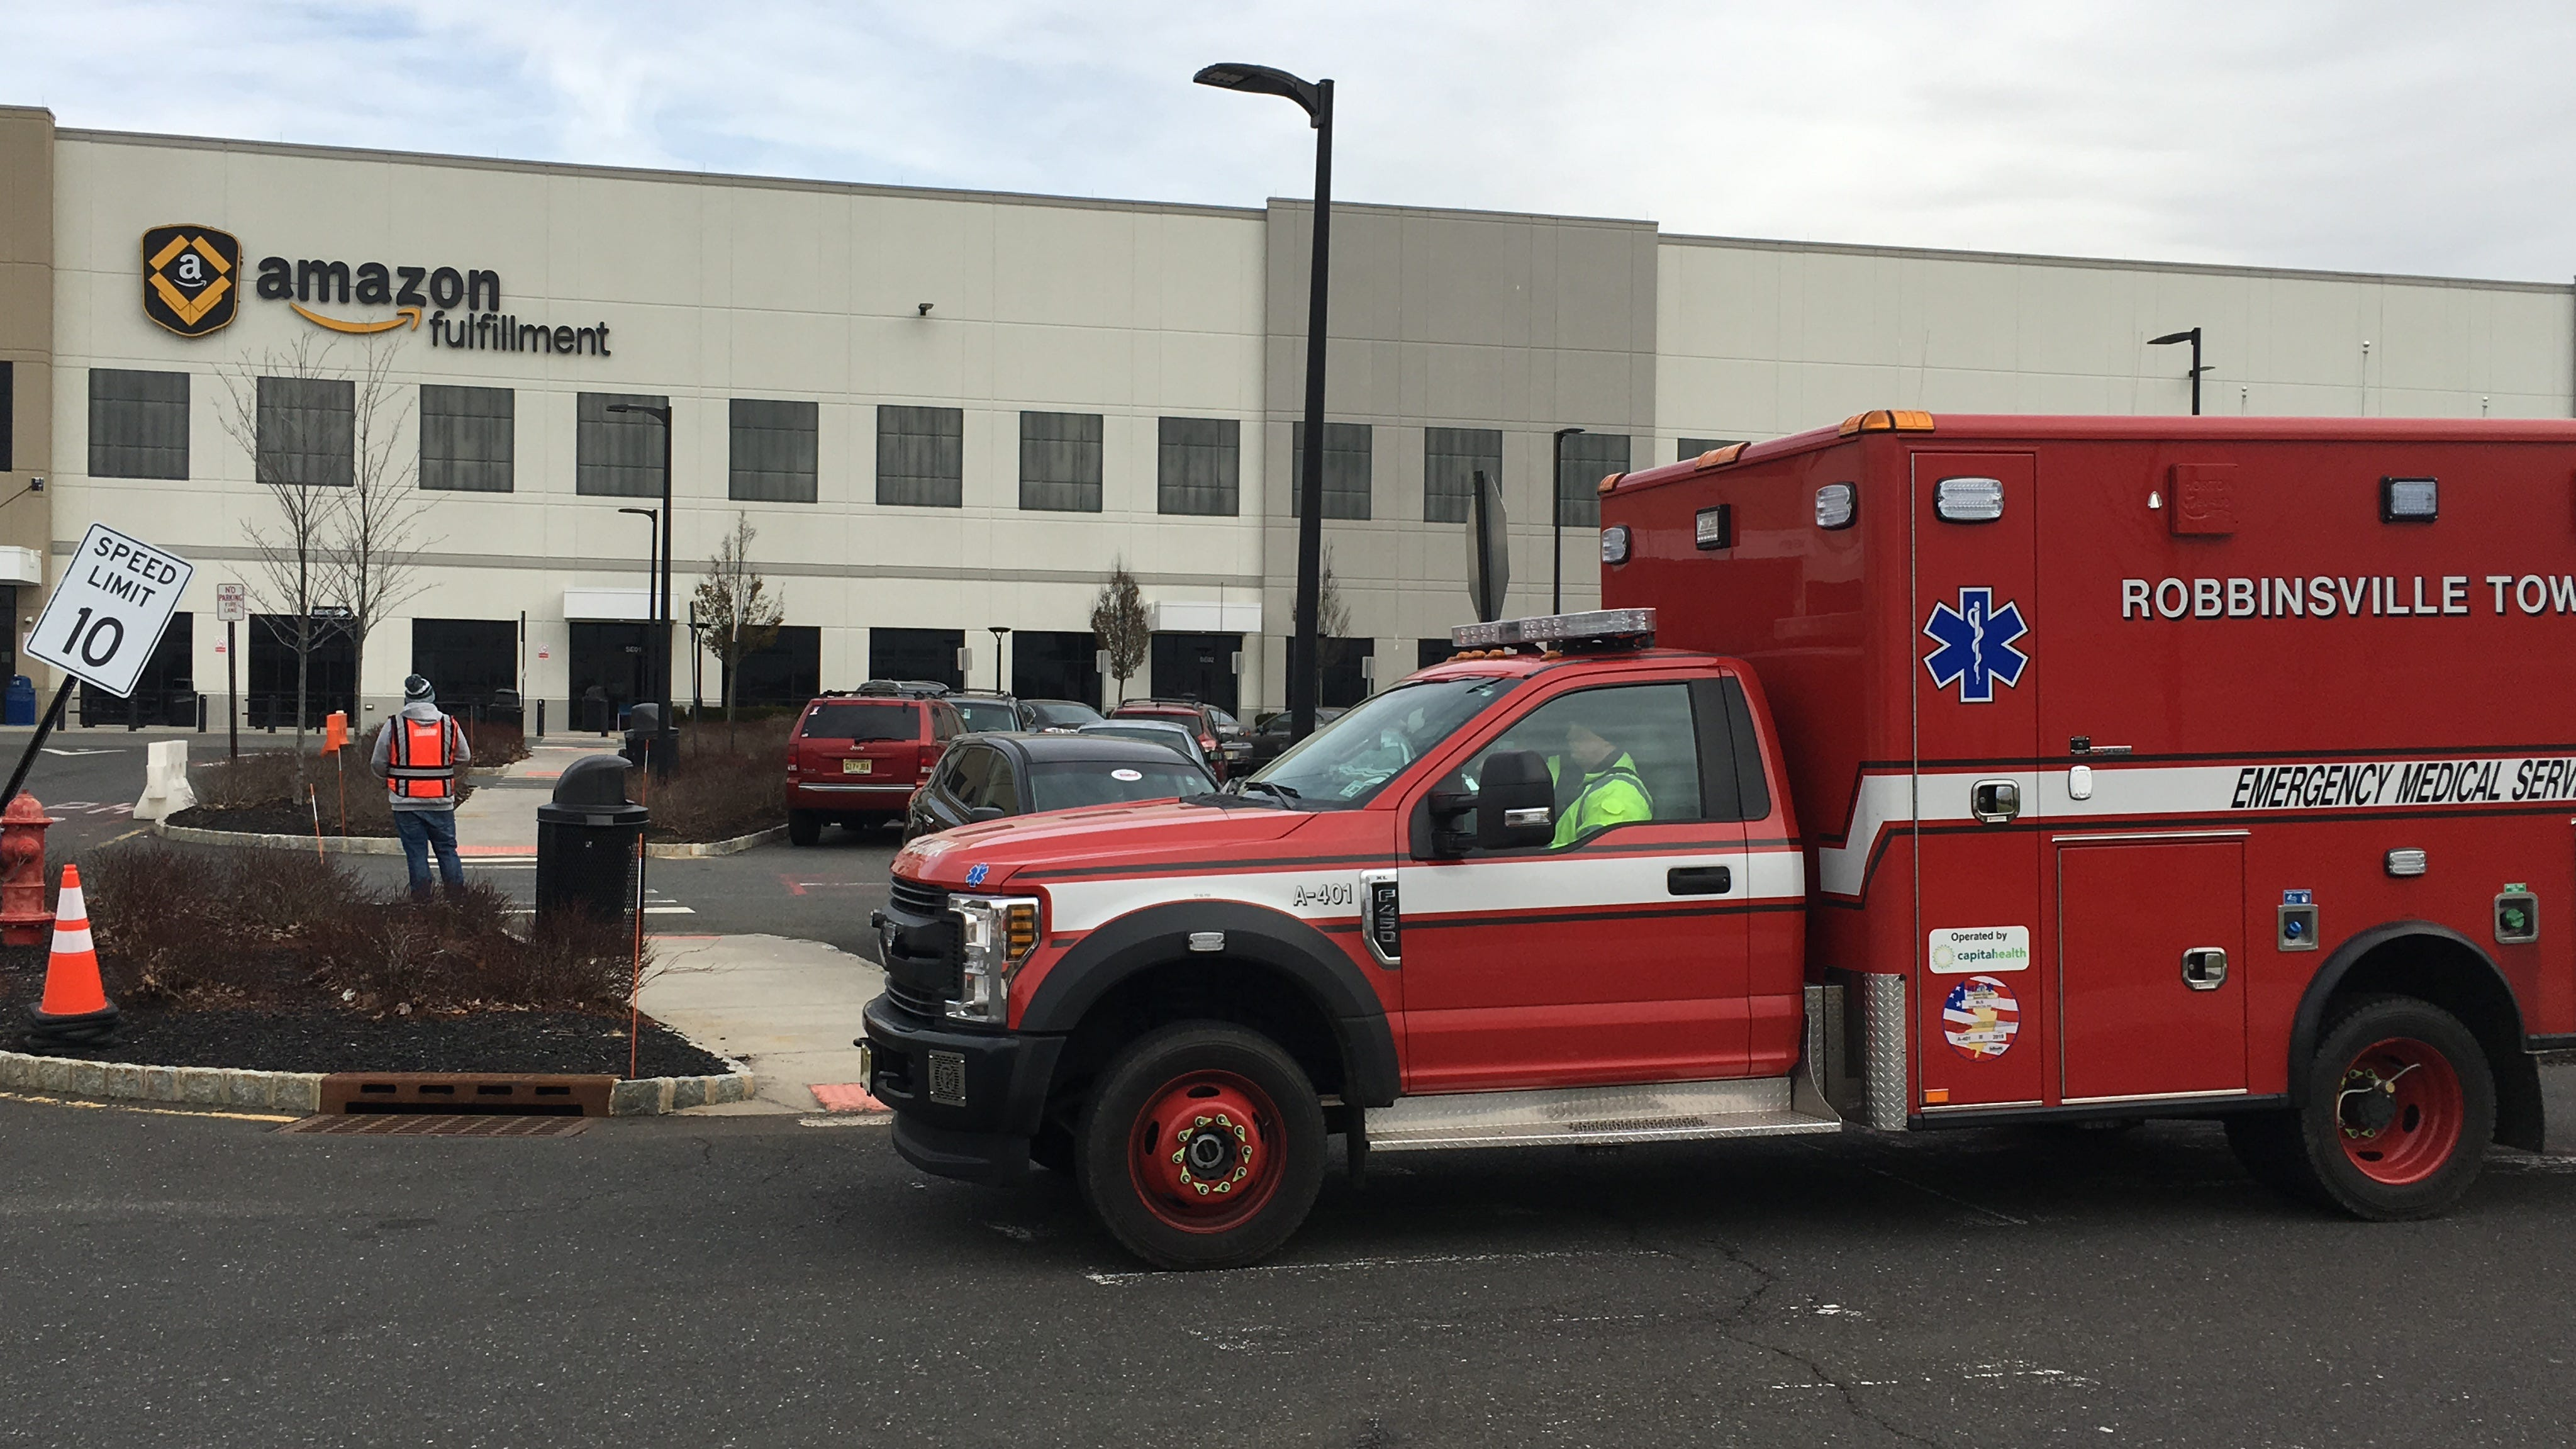 One person critically injured after bear repellent falls off shelf at NJ Amazon warehouse